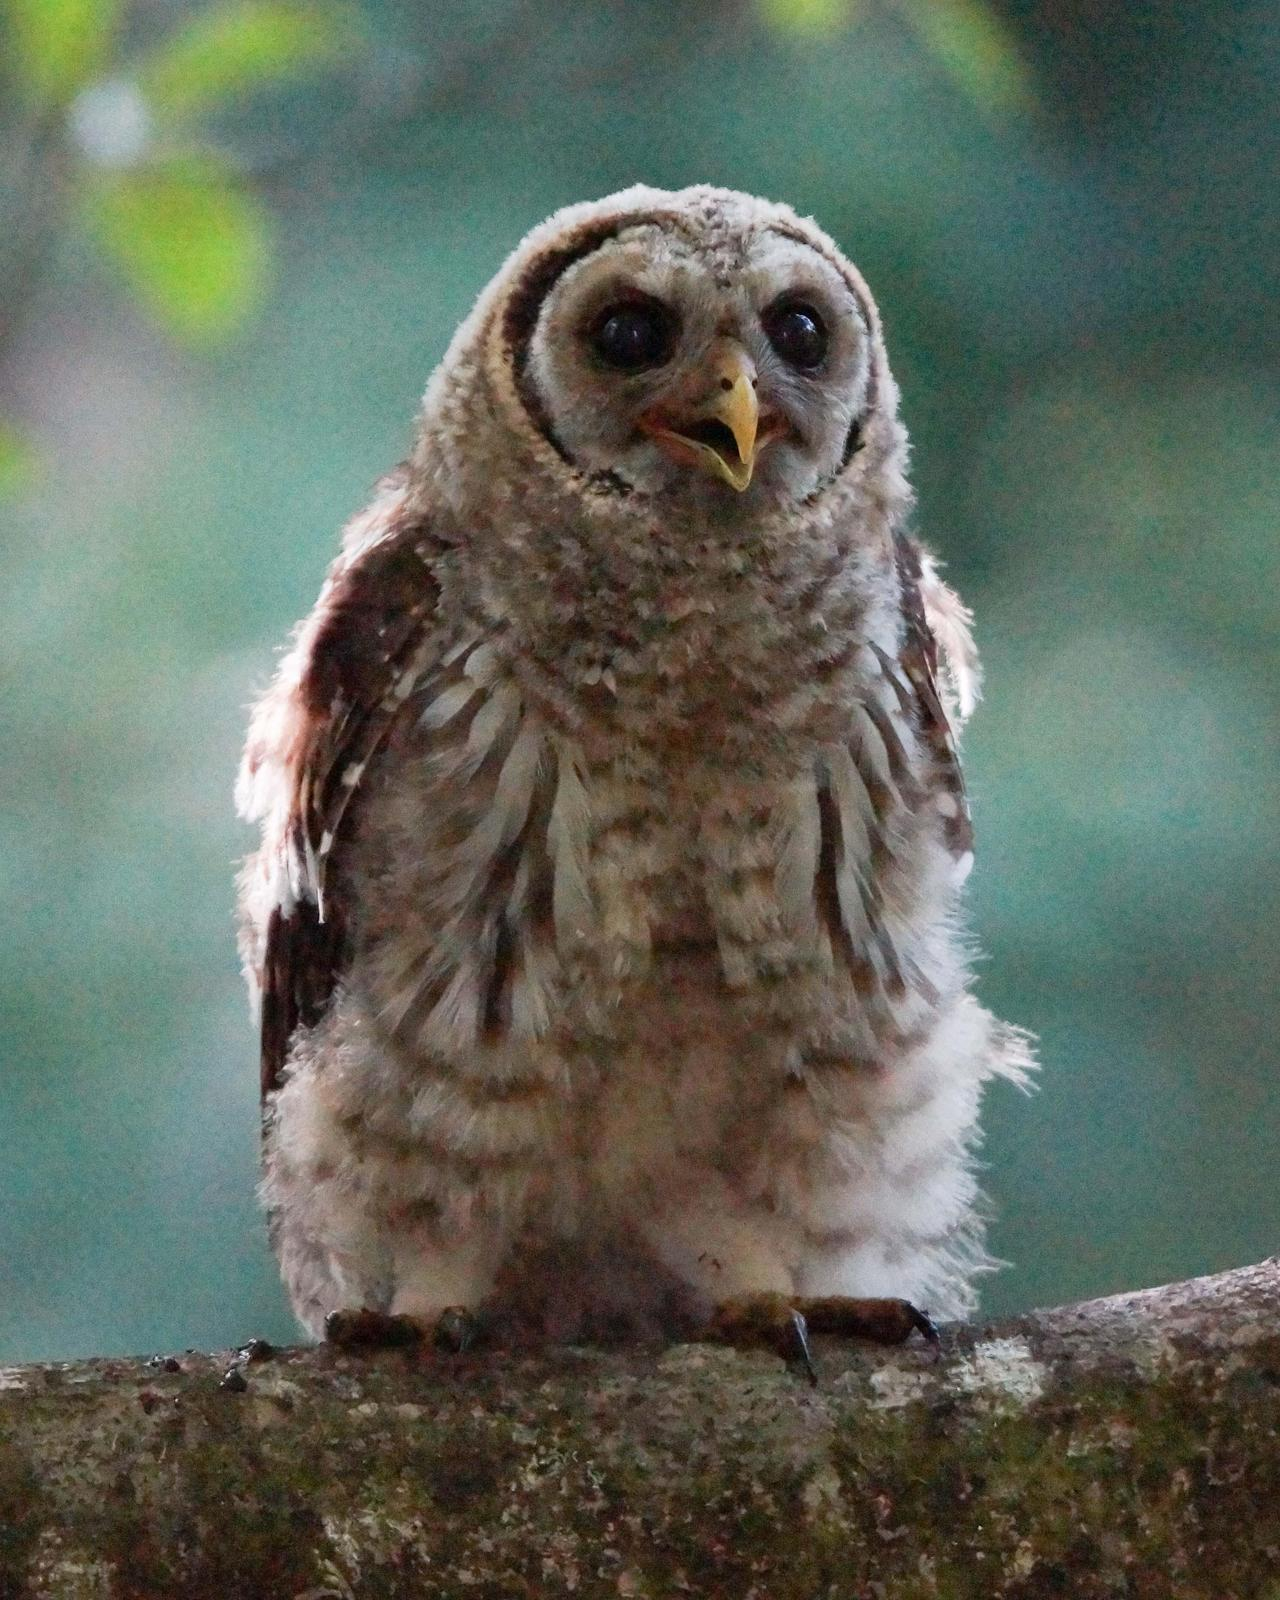 Barred Owl Photo by Steve Percival